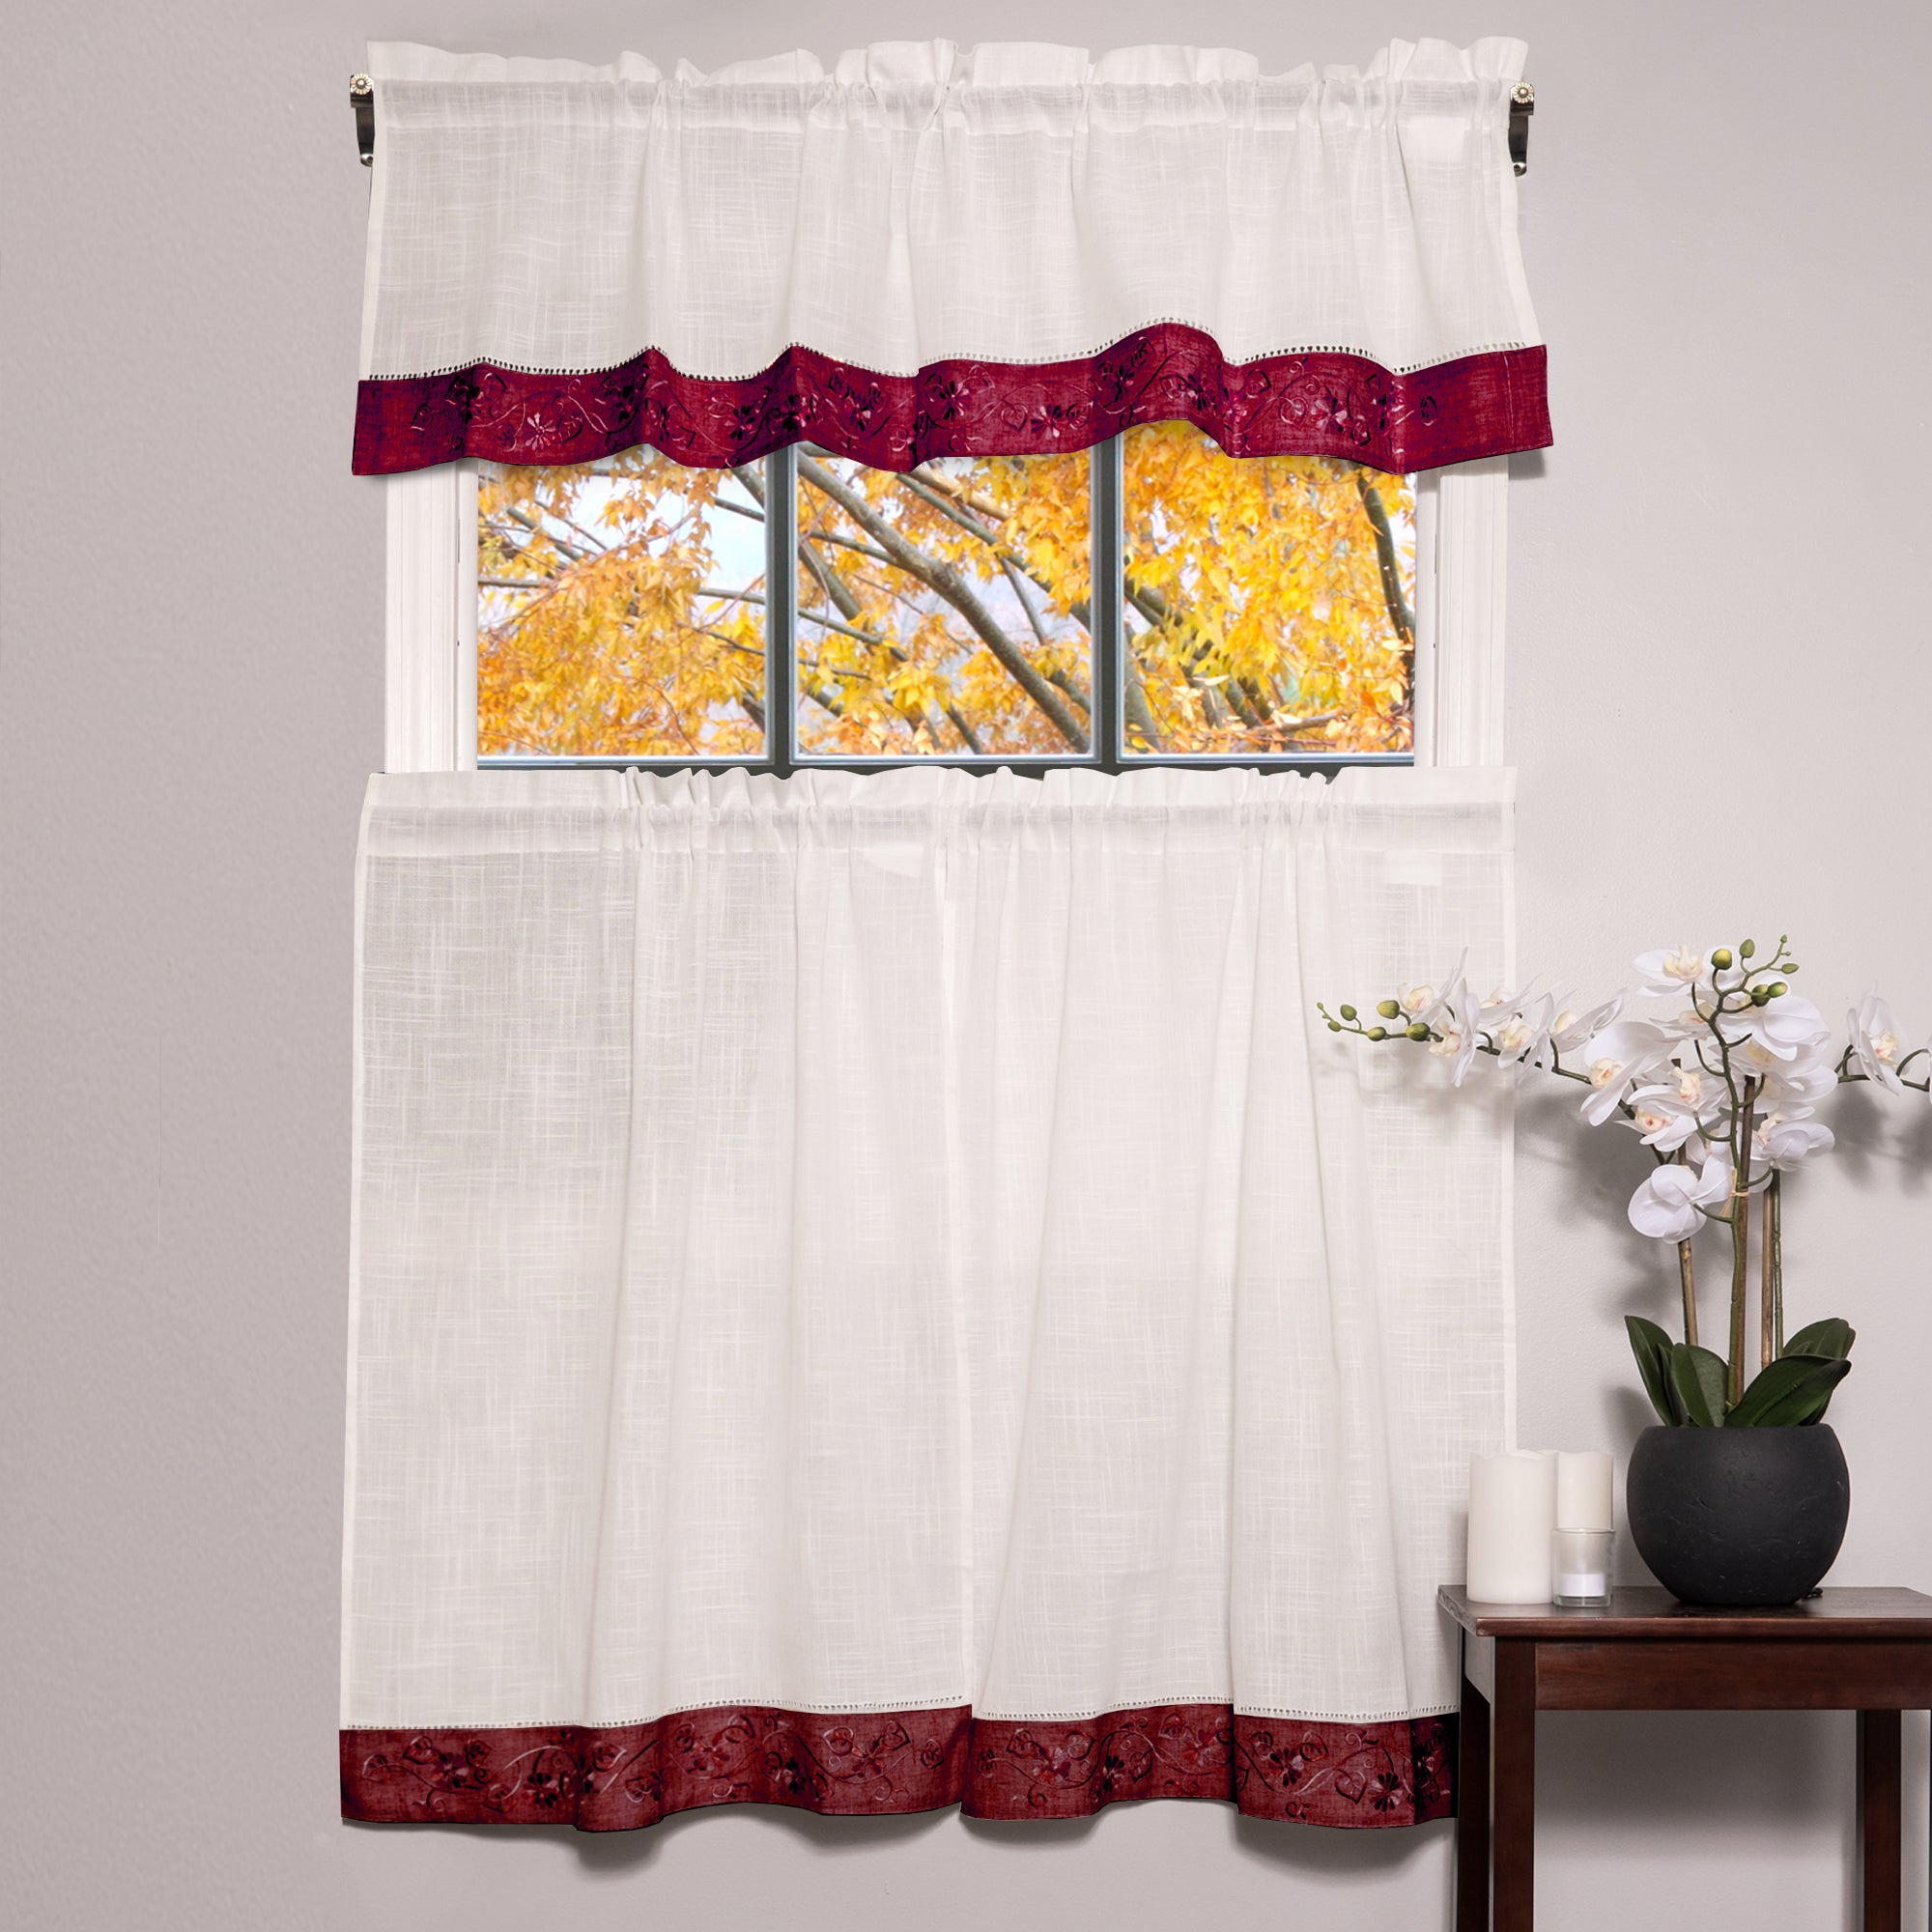 Most Recent Oakwood Linen Style Decorative Curtain Tier Sets Intended For Oakwood Linen Style Decorative Window Curtain Tier Set (View 1 of 20)